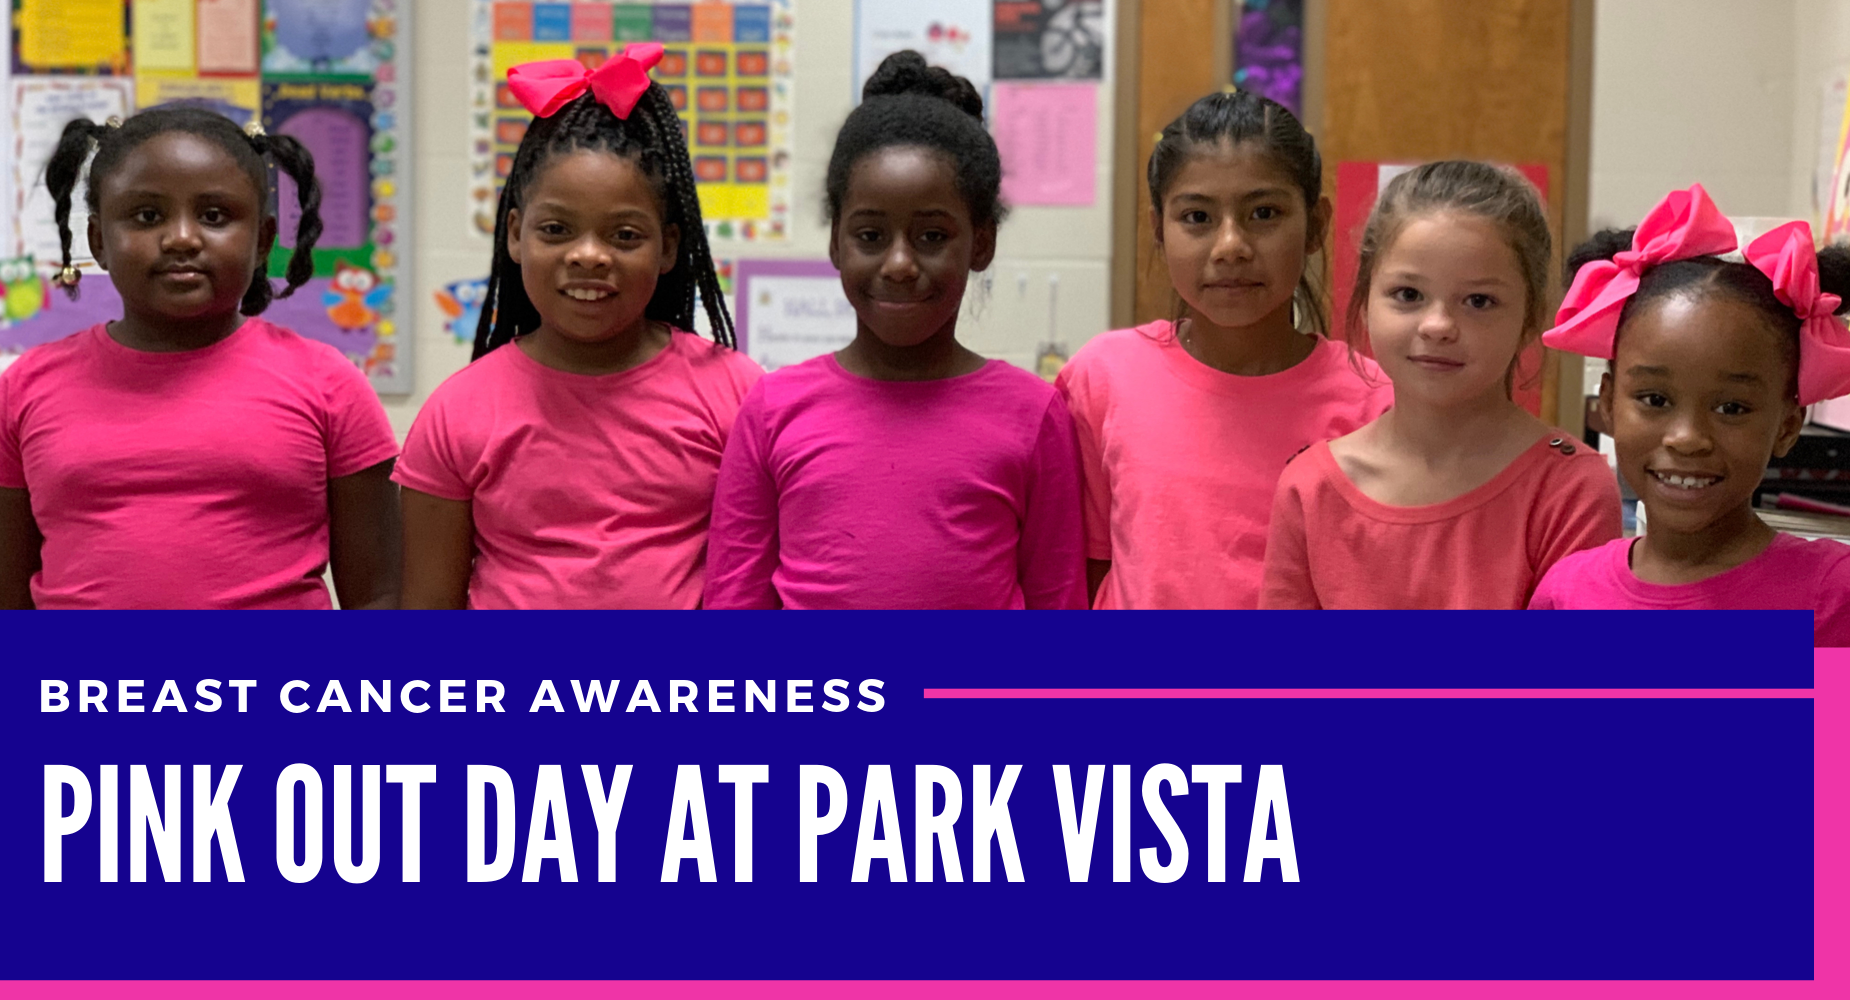 pink out day at park vista